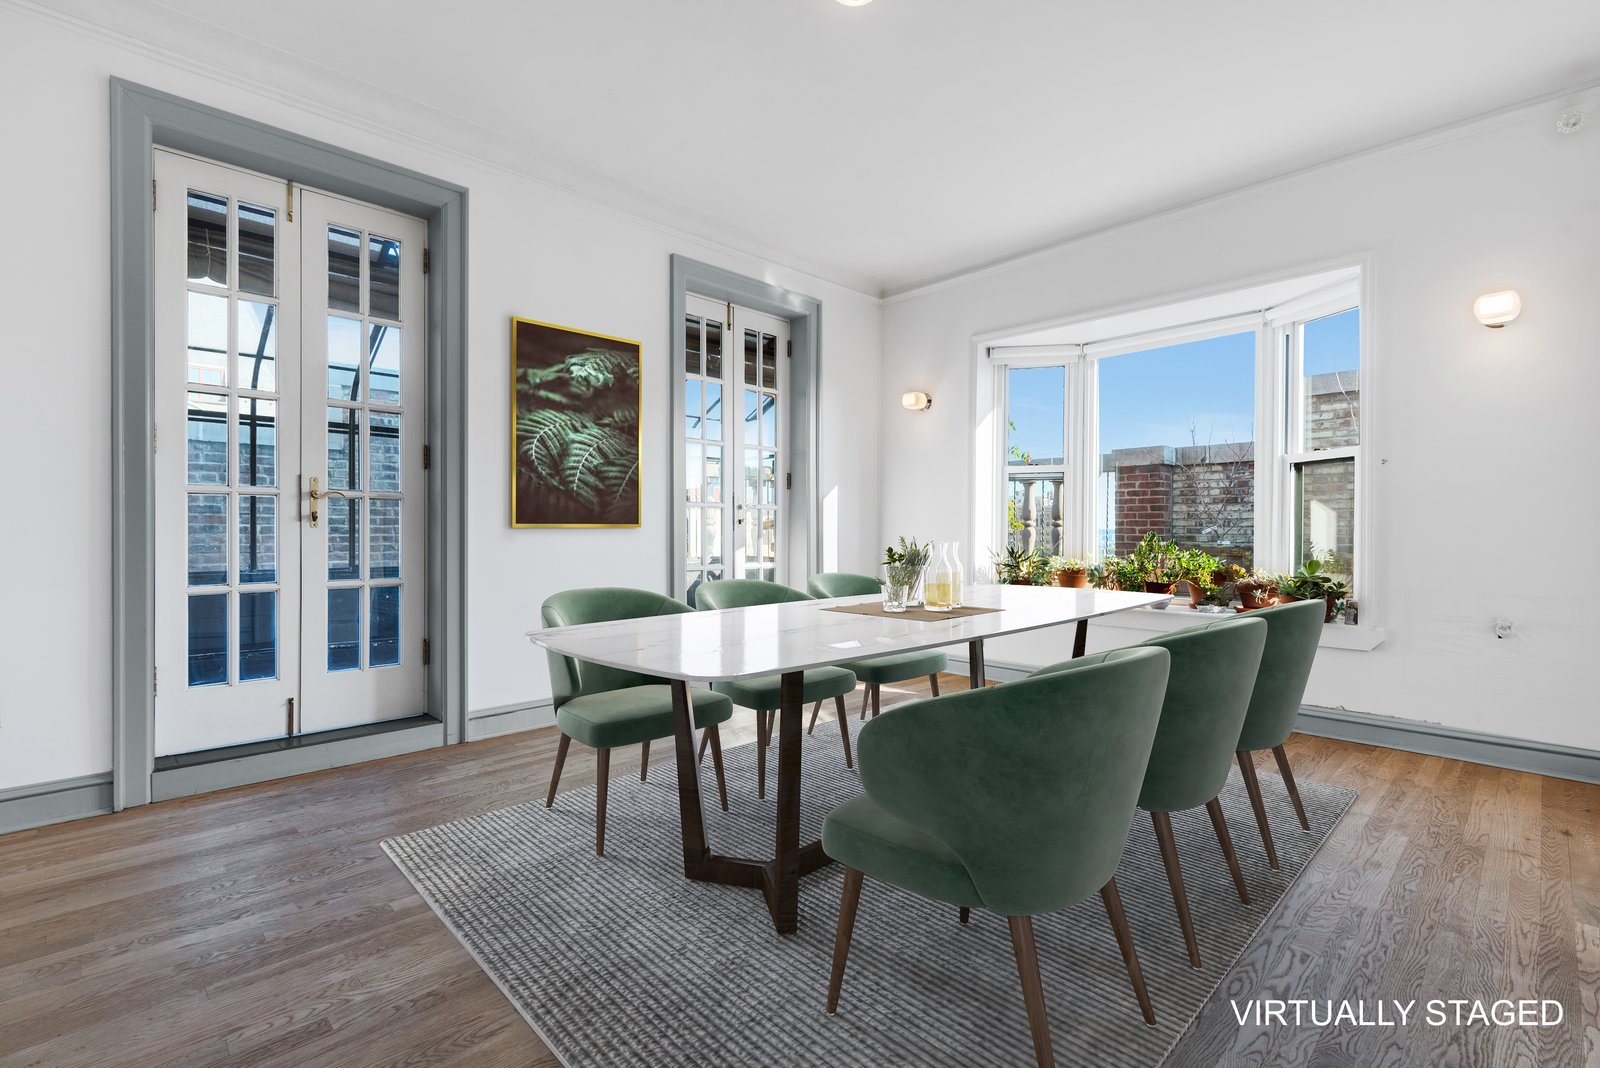 Dining Room, Table, Chair, Medium Hardwood Floor, Wall Lighting, and Rug Floor The dining room features a bay window.  Photo 5 of 12 in Björk Puts Her Brooklyn Heights Penthouse on the Market For $9M